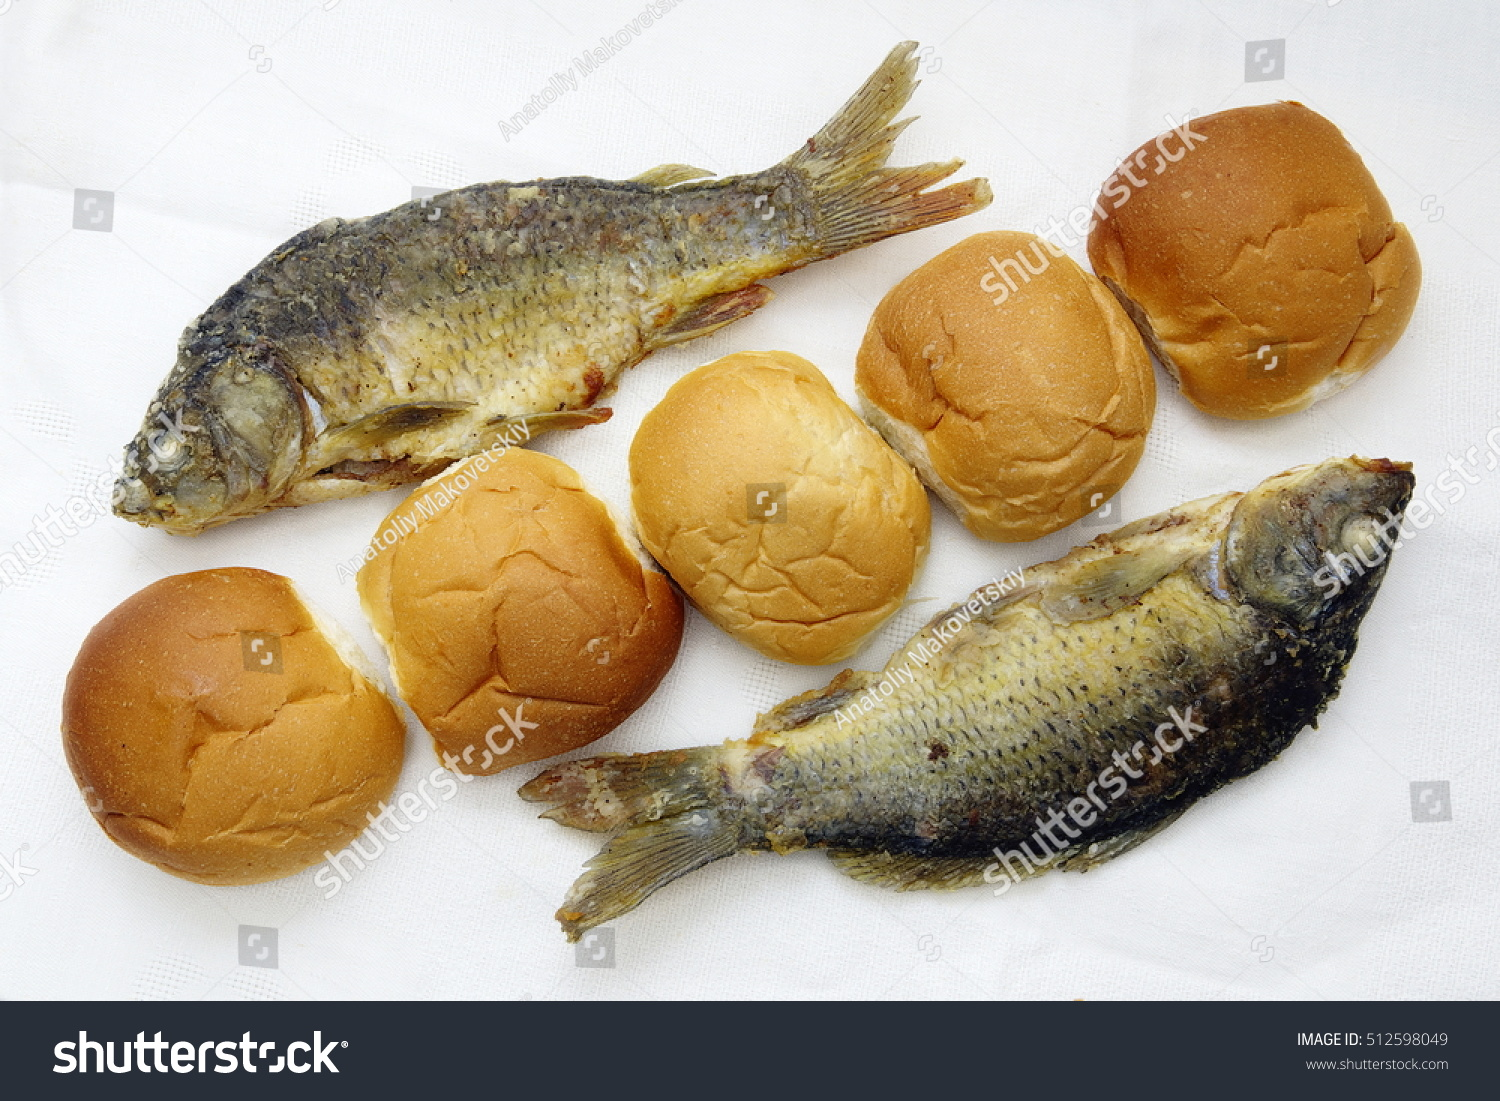 Five loaves two fishes stock photo 512598049 shutterstock for Loaves and fishes